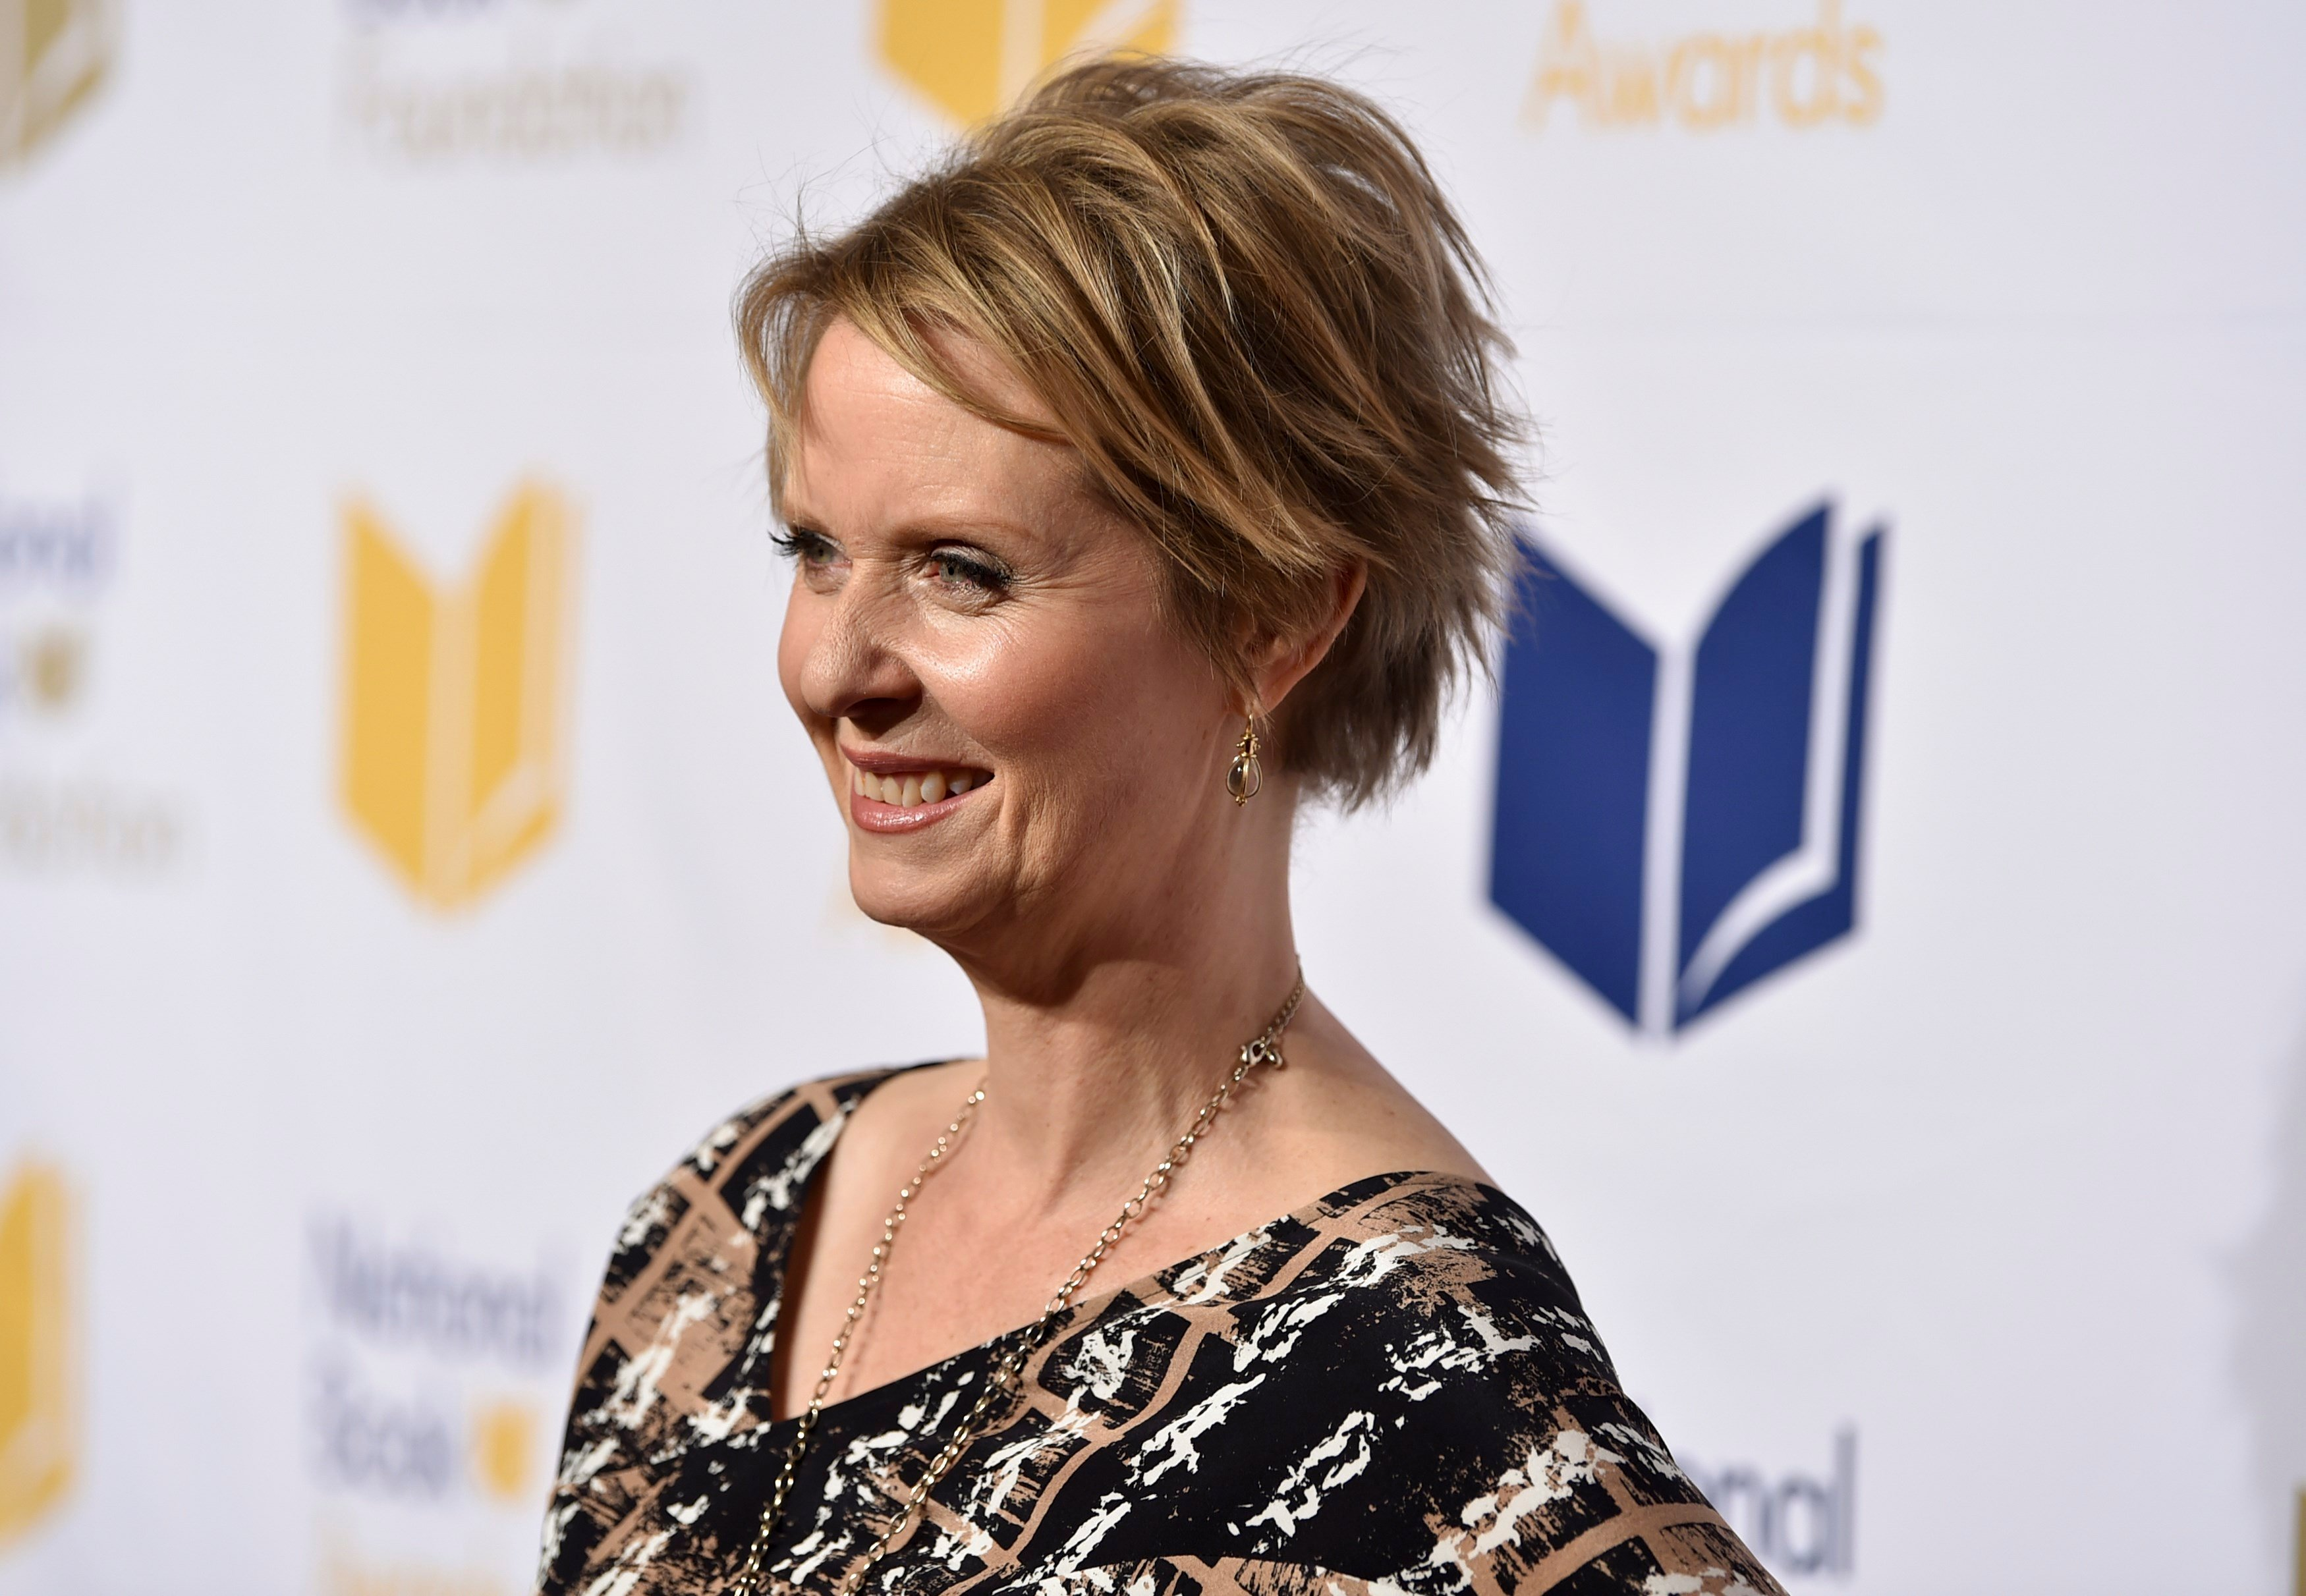 Cynthia Nixon attends the 68th National Book Awards Ceremony and Benefit Dinner at Cipriani Wall Street on Nov. 15, 2017, in New York.